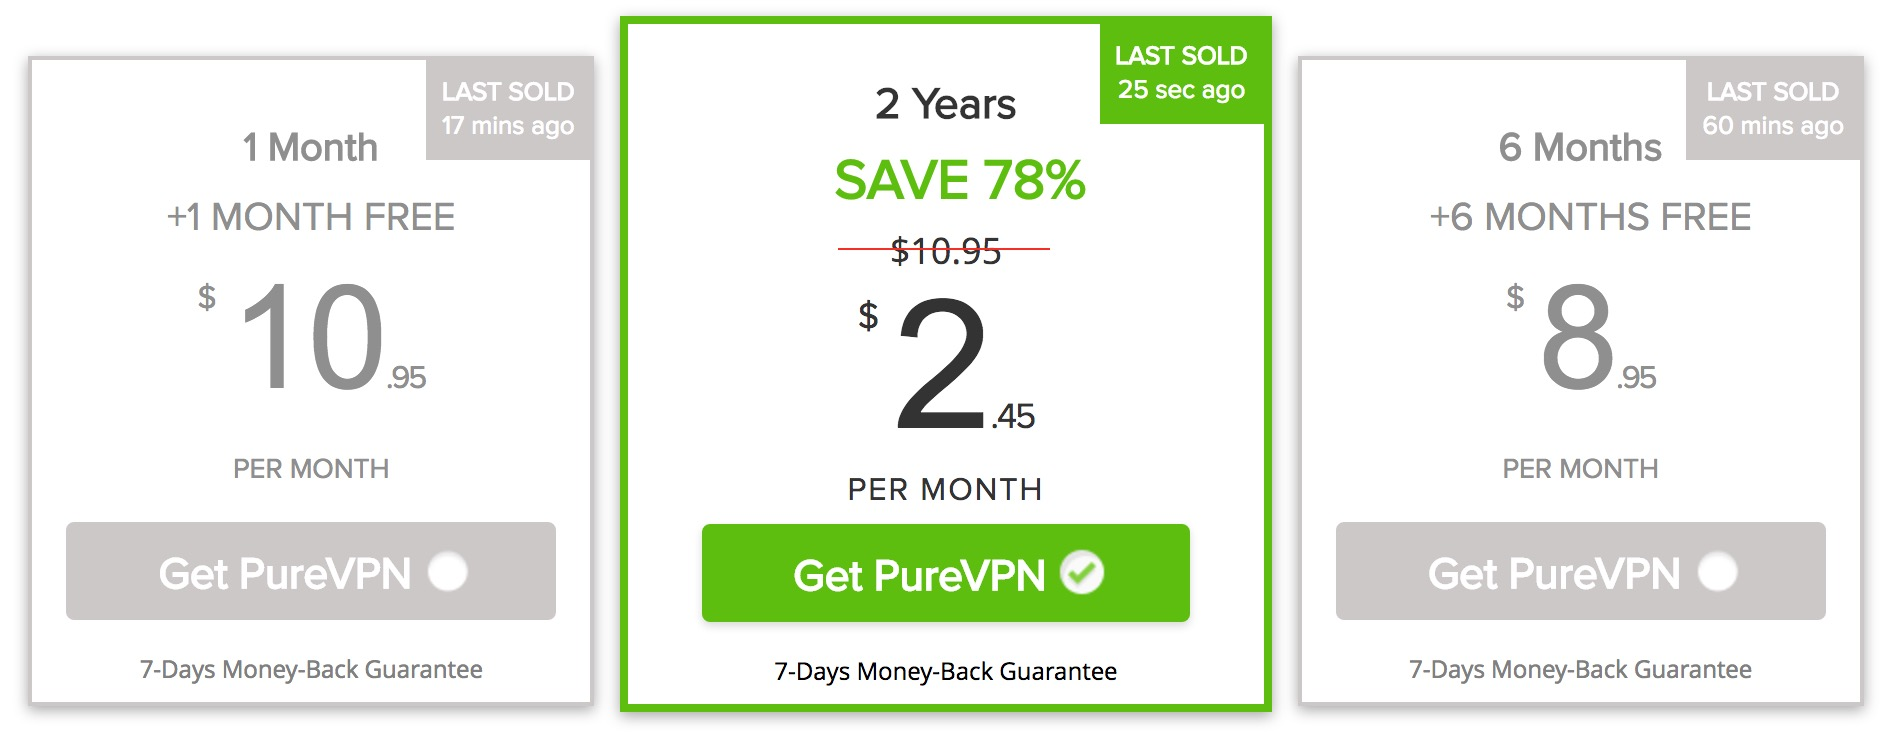 Pricing and Plans pureVPN